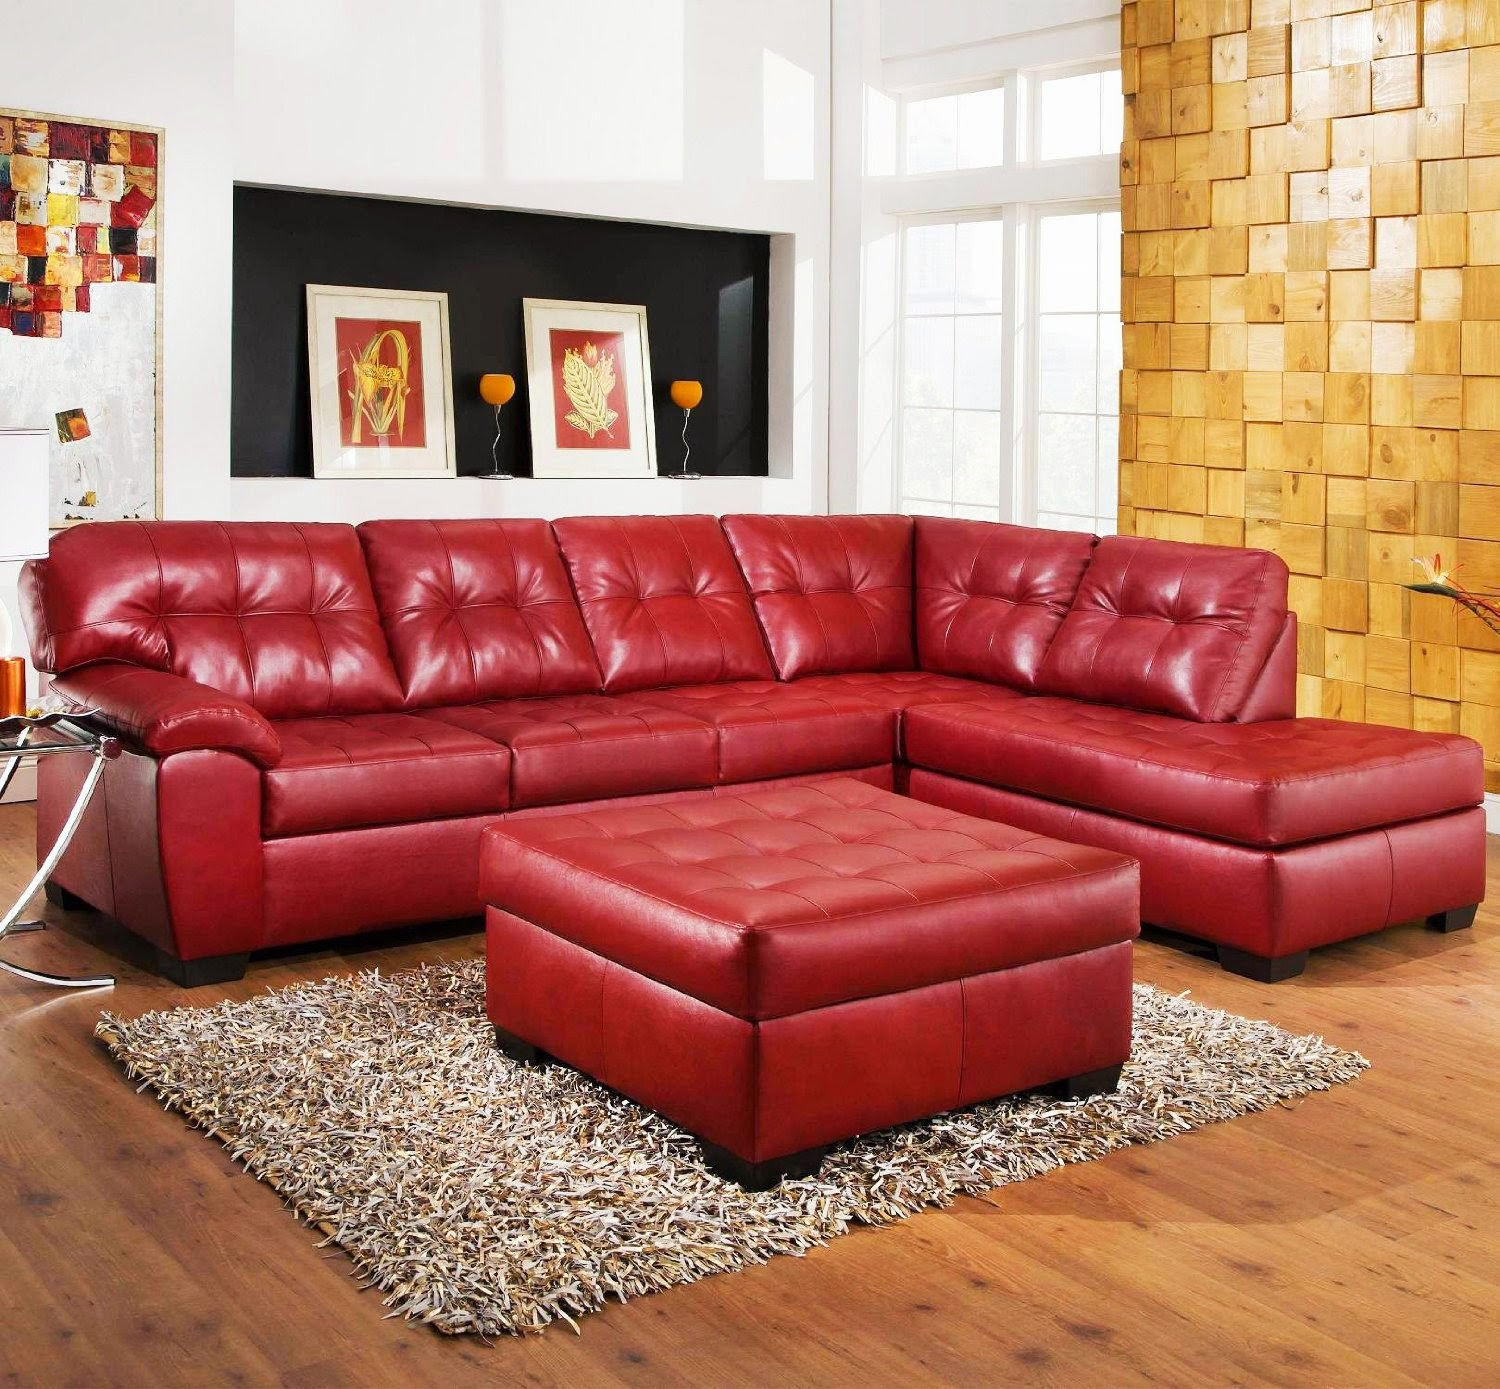 3-Piece Red Leather Sectional Sofa With Chaise And Ottoman Set